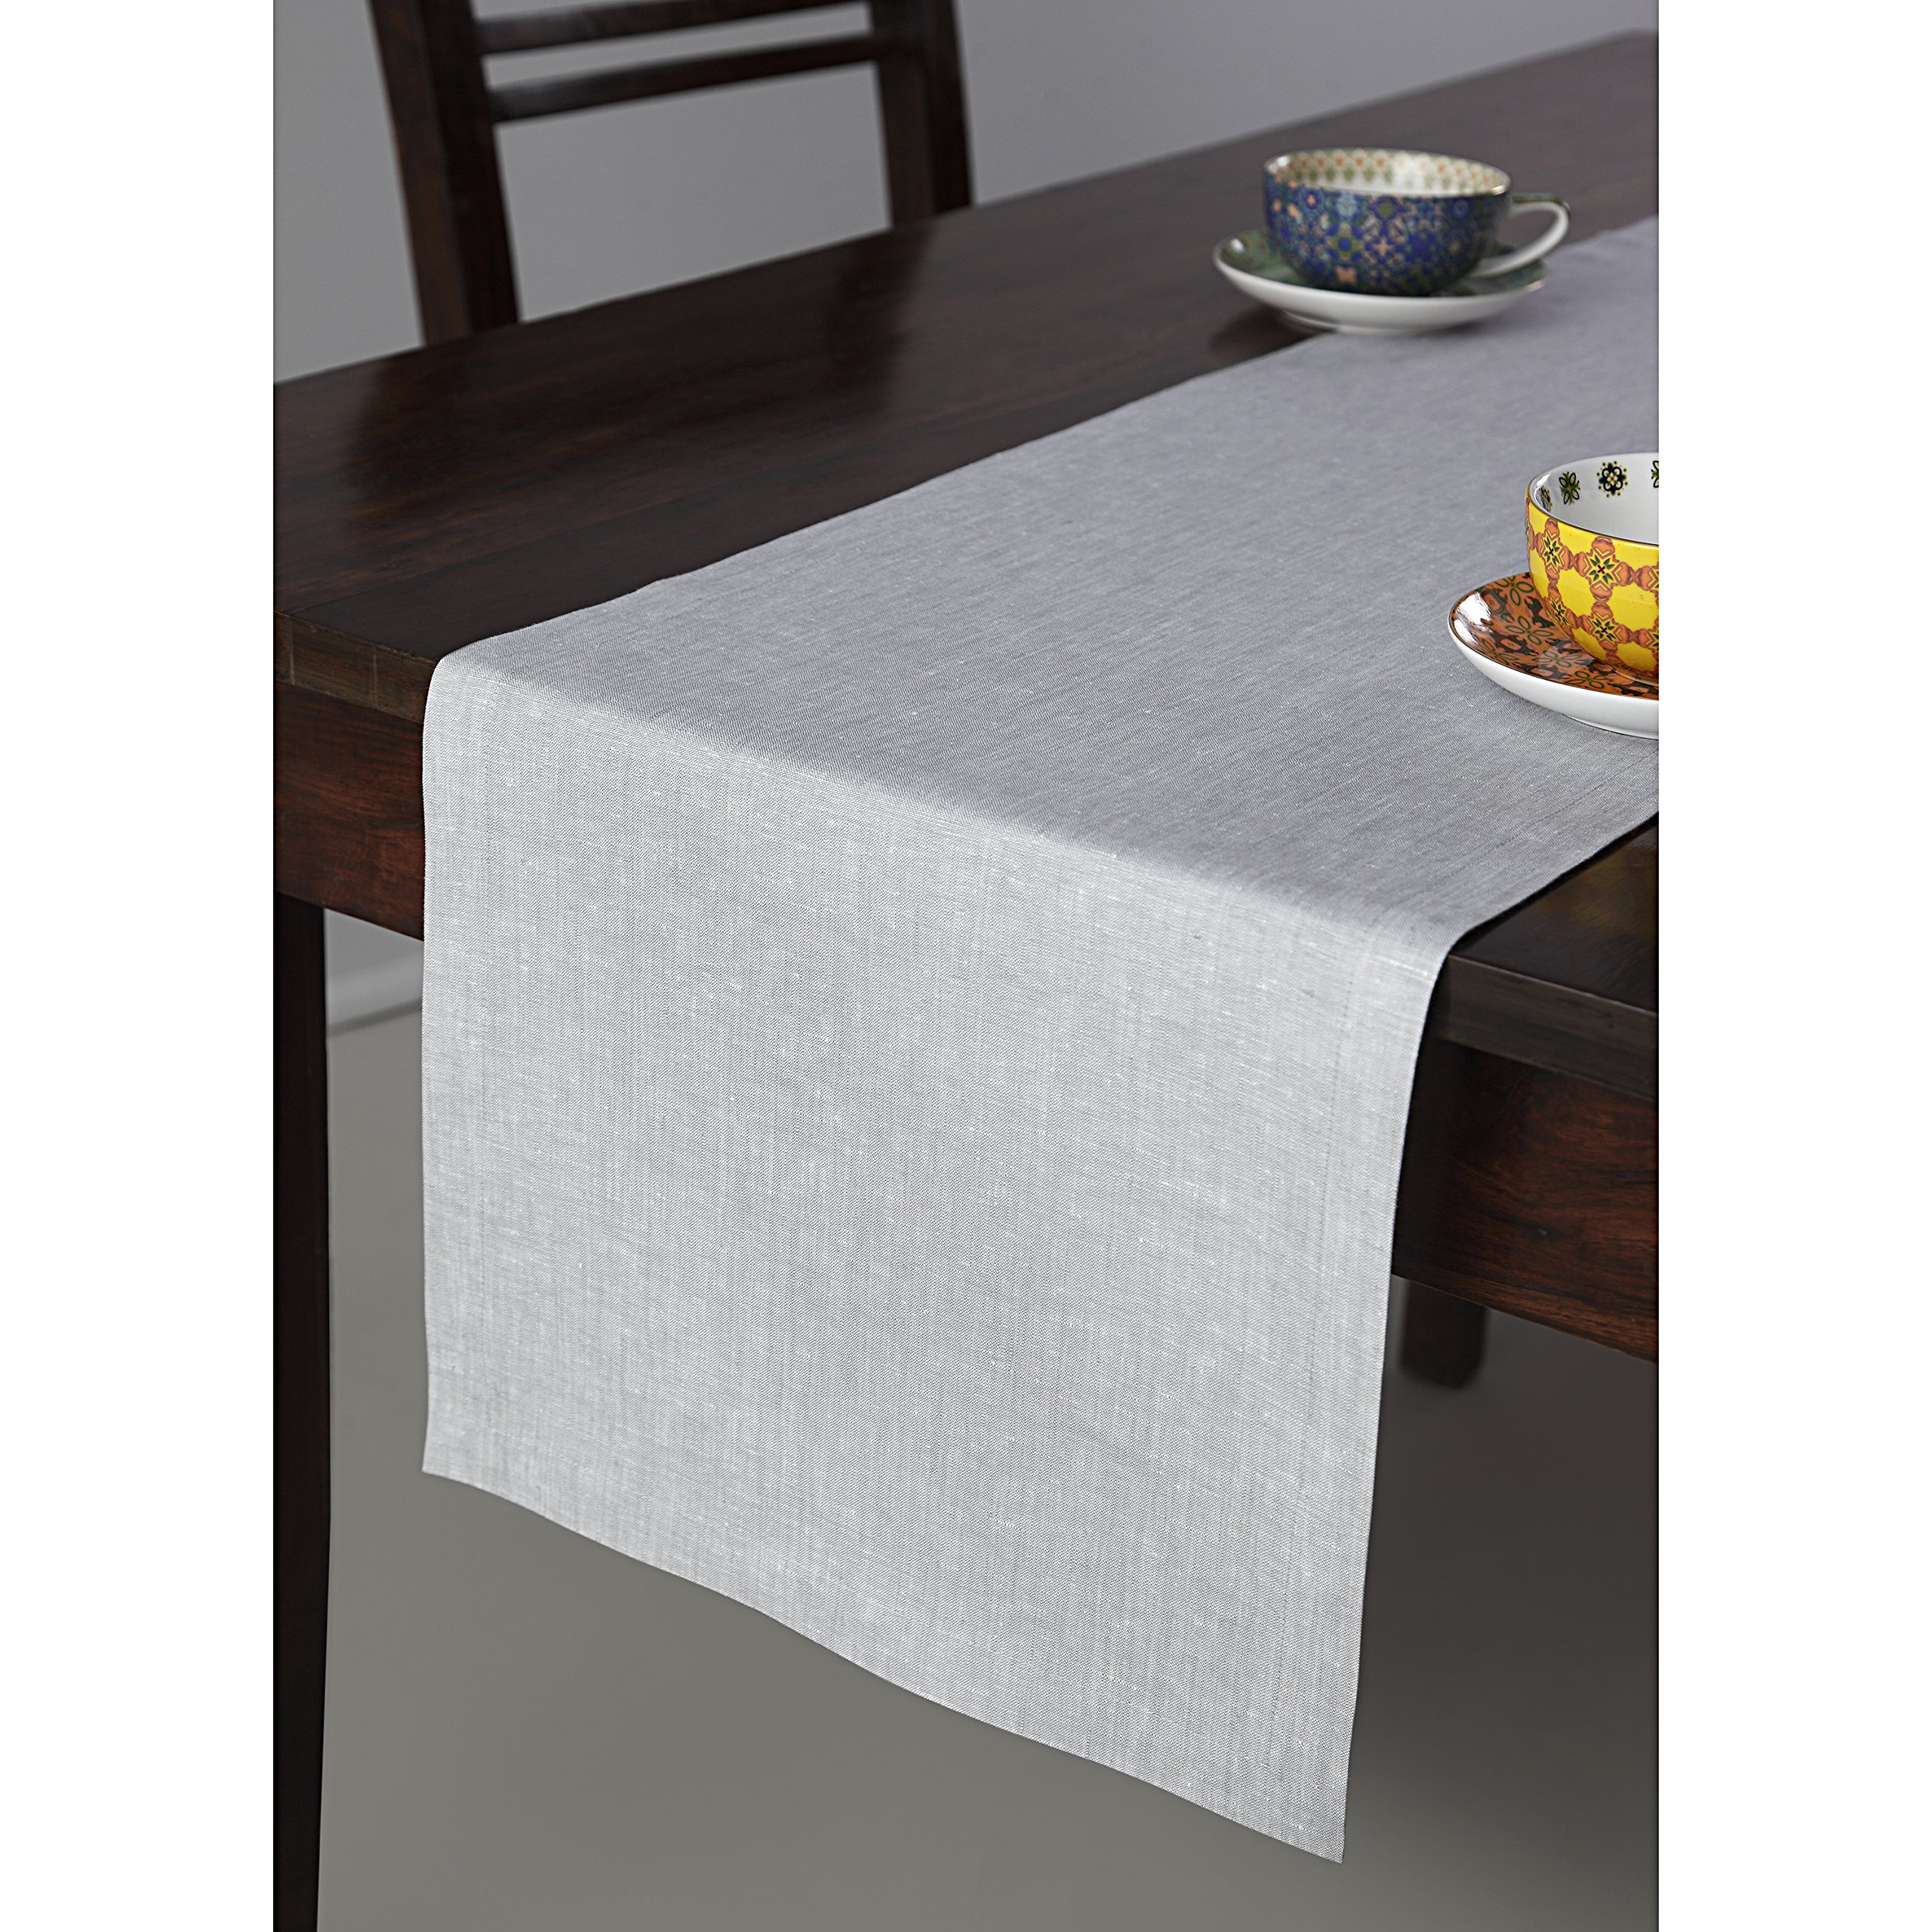 Solino Home 100% Pure Linen Table Runner Tesoro, 14 x 120 Inch Light Graphite, Natural Fabric and Handcrafted